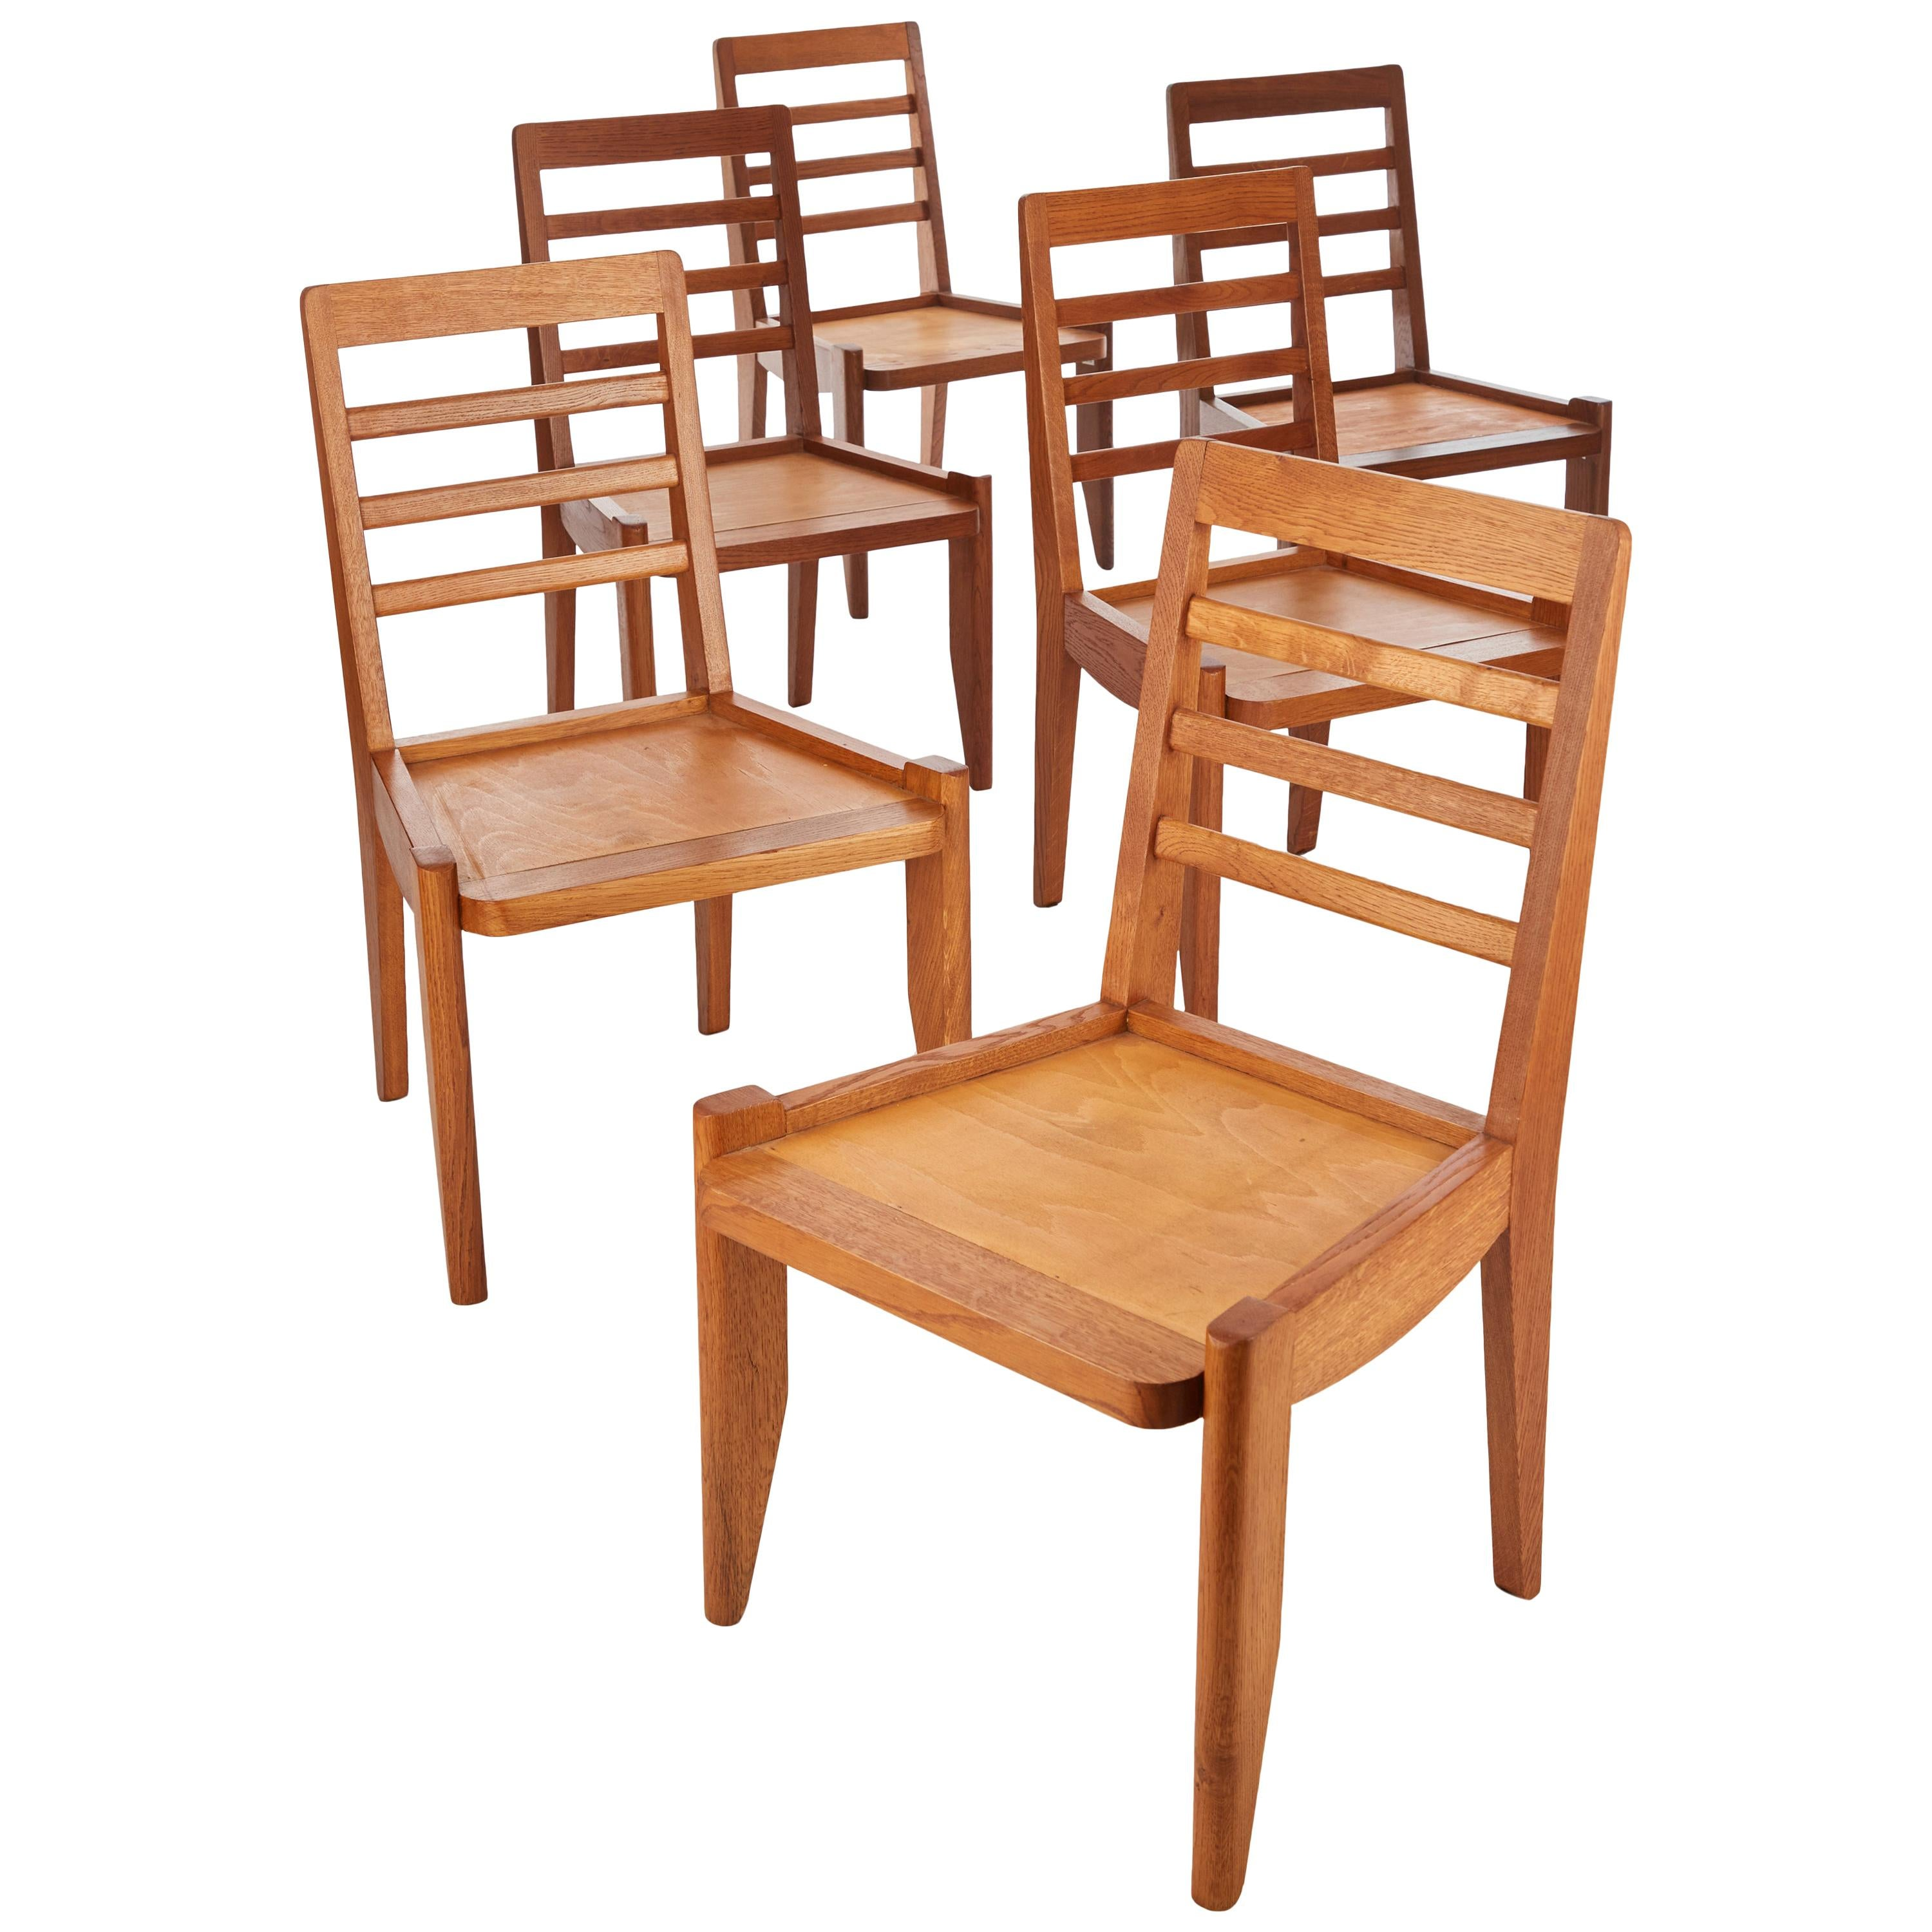 Guillerme et Chambron, 6 Polished Oak Dining Chairs, France, Mid-20th Century